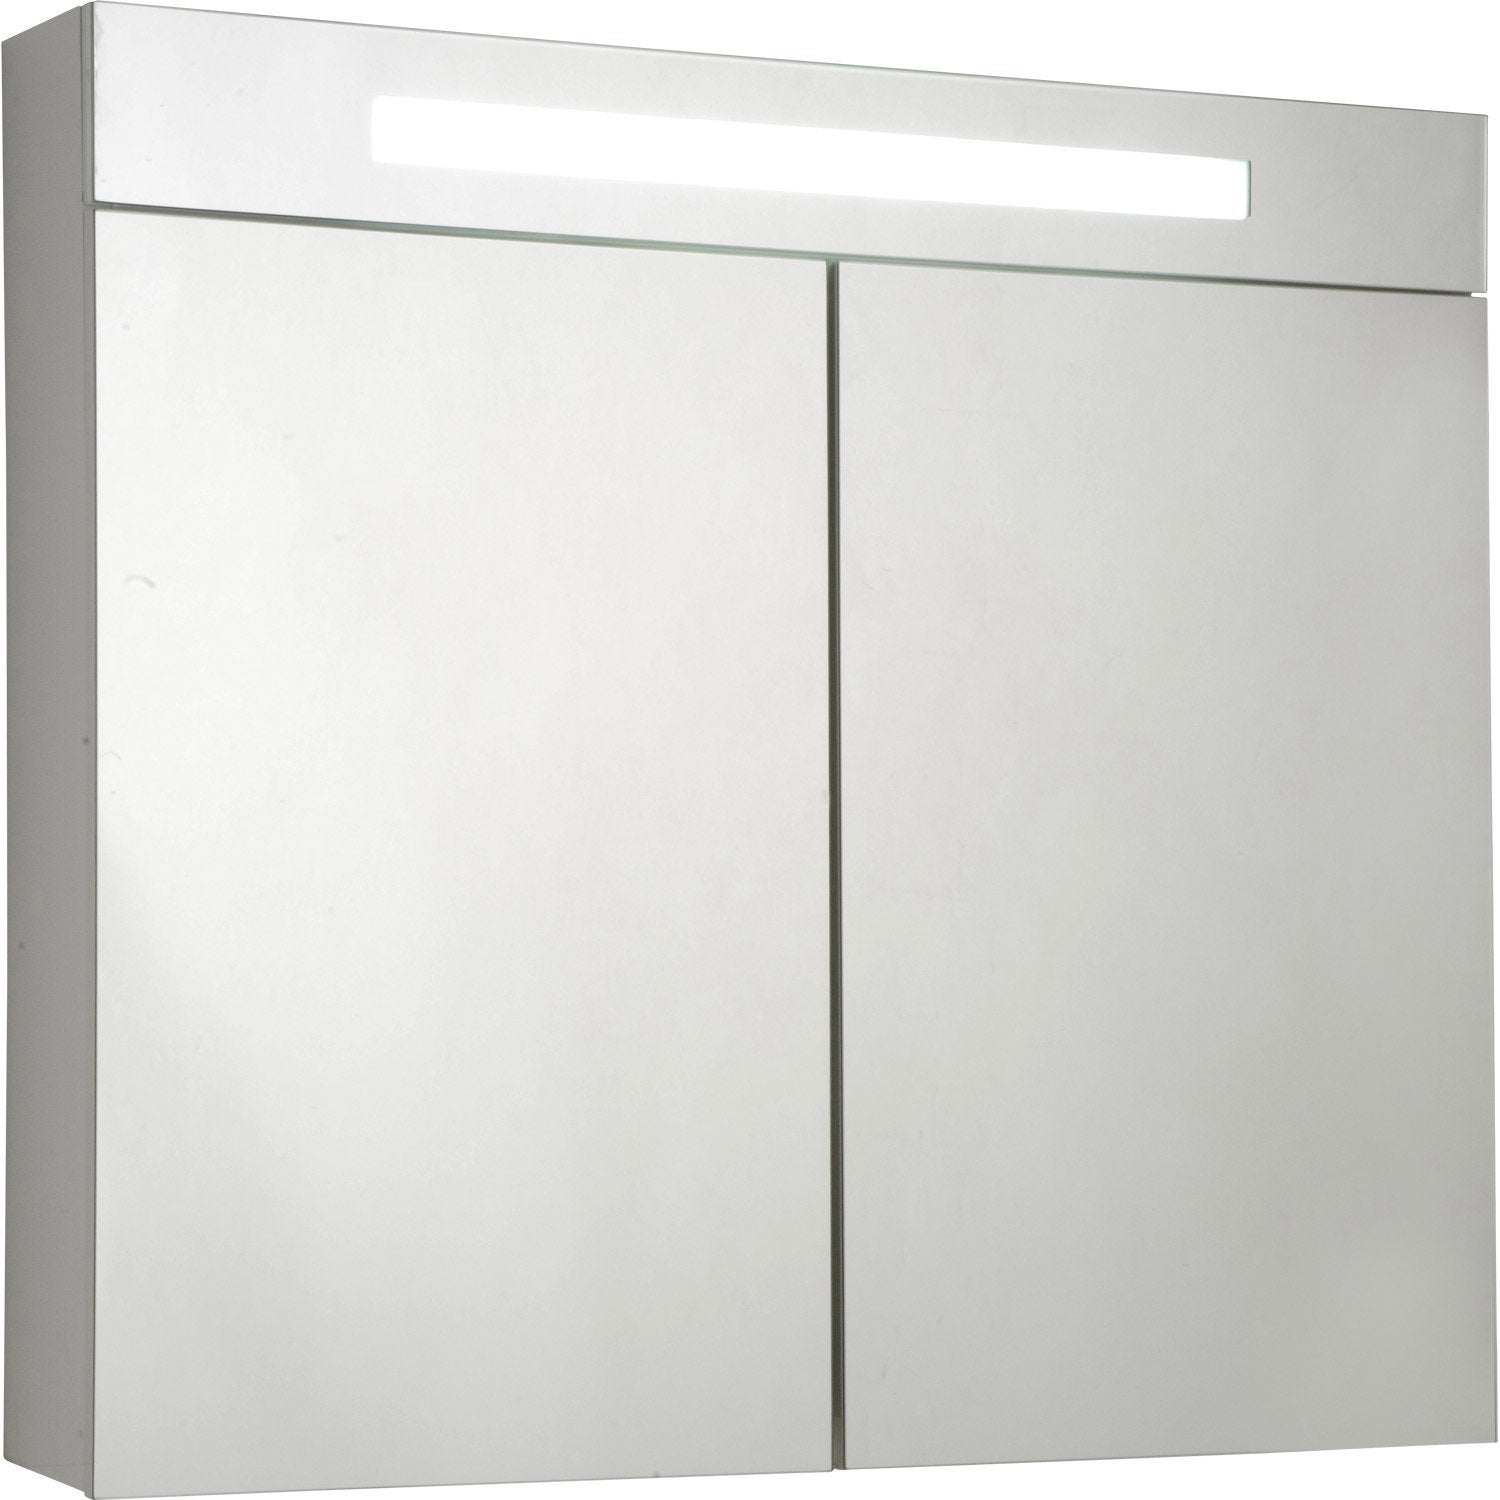 armoire de toilette lumineuse blanc cm sensea telio leroy merlin. Black Bedroom Furniture Sets. Home Design Ideas